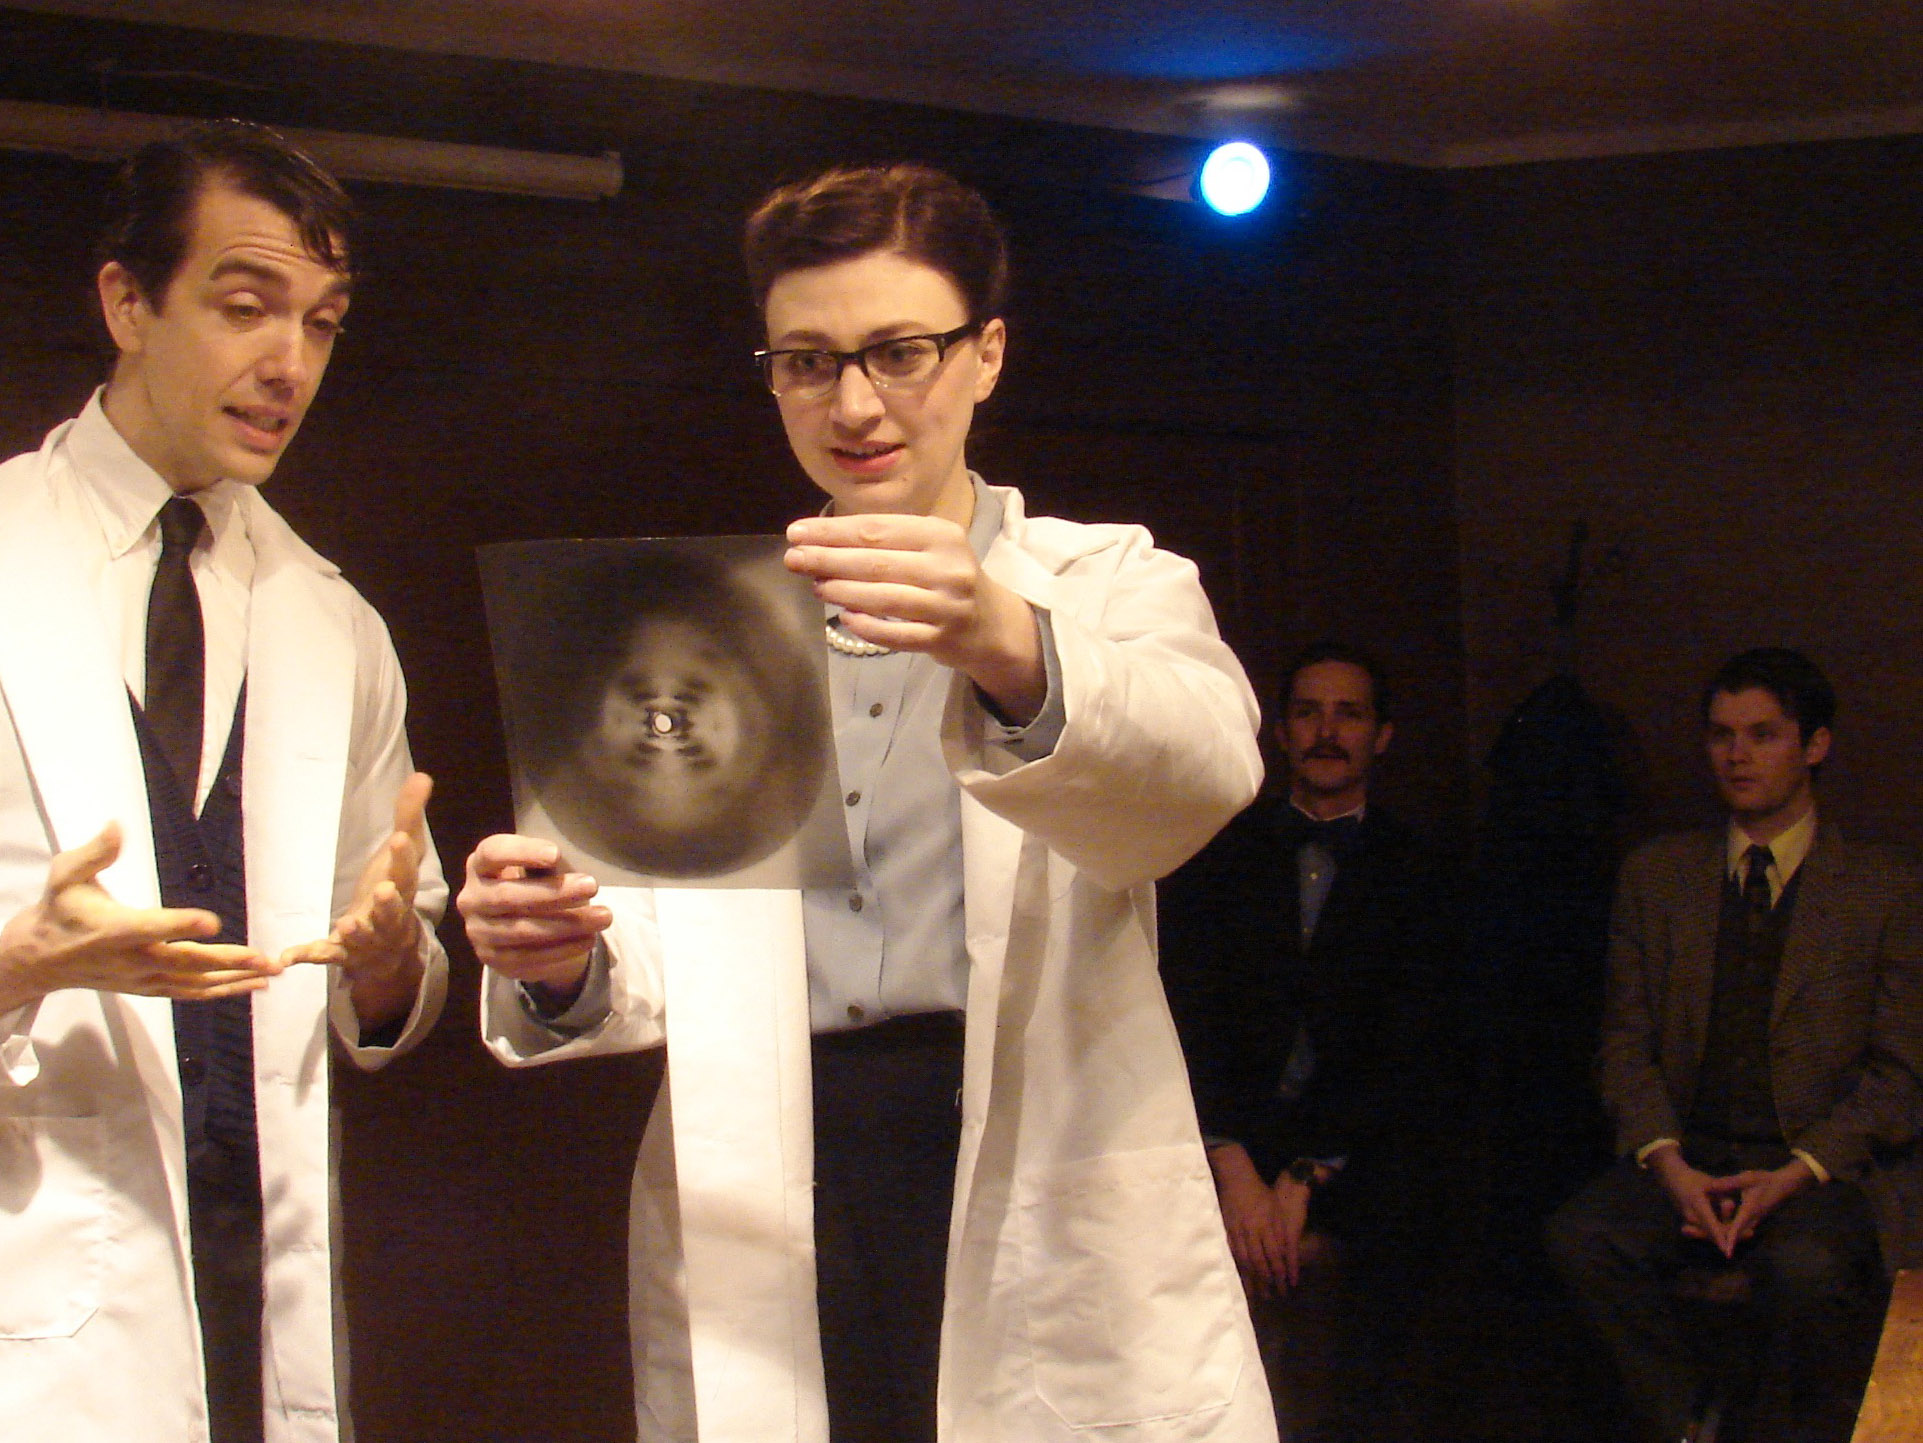 Don Baiocchi as Raymond Gosling, Lindsey Dorcus as Rosalind Franklin